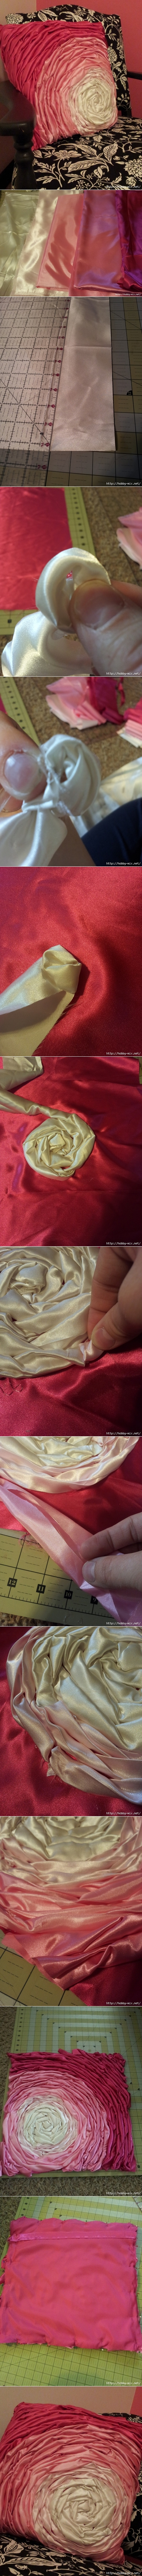 satin cushion tutorial